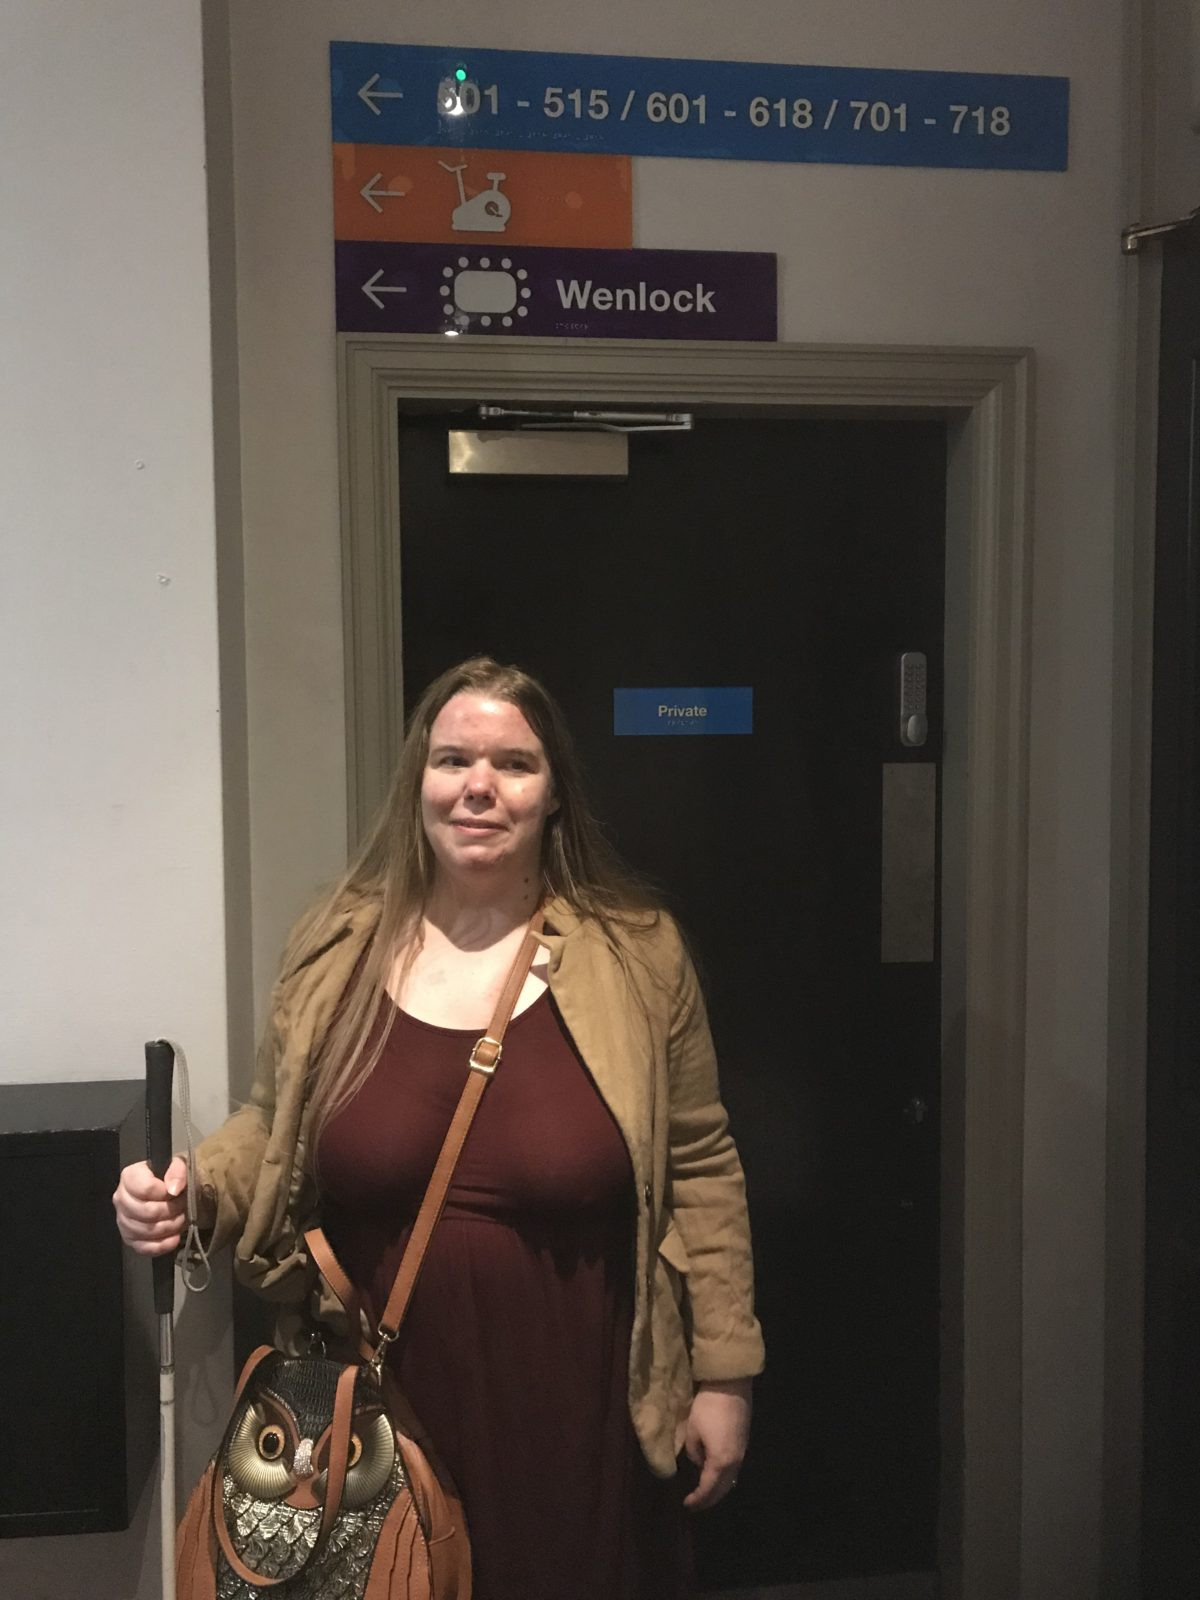 Braille signs and accessibility – why these signs didn't help me find my way around